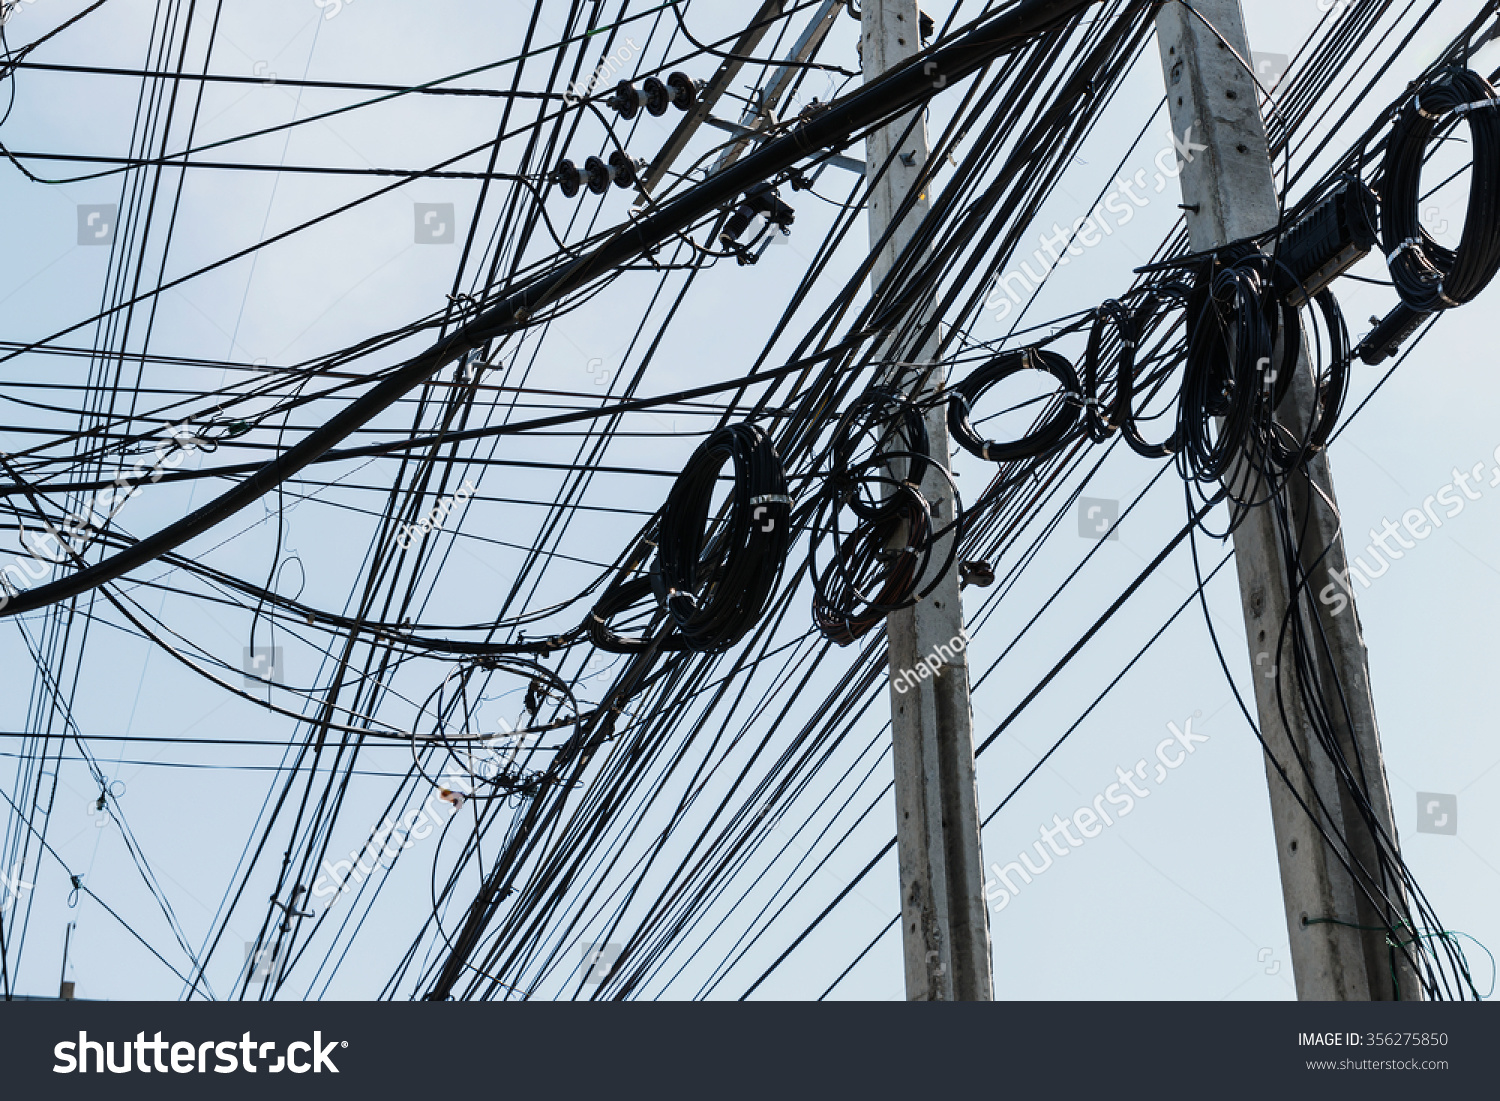 hight resolution of electrical cables with telephone lines tangled messy in bangkok city thailand 356275850